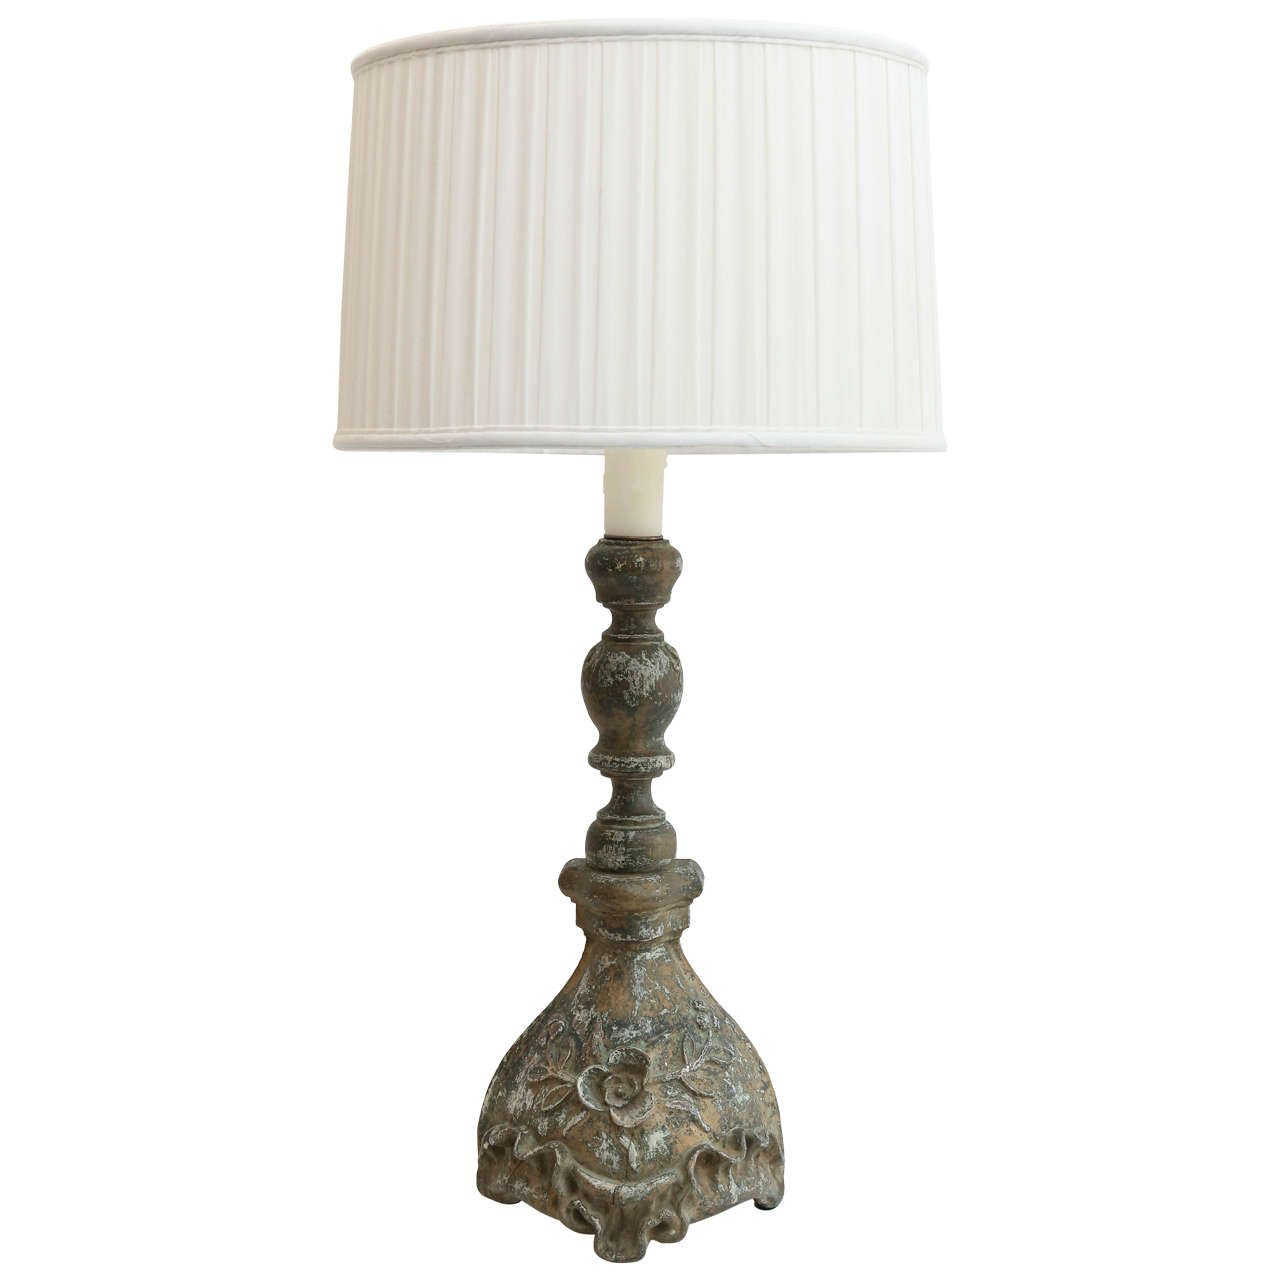 Late 19th century carved candlestick as custom table lamp late 19th century carved candlestick as custom table lamp geotapseo Gallery